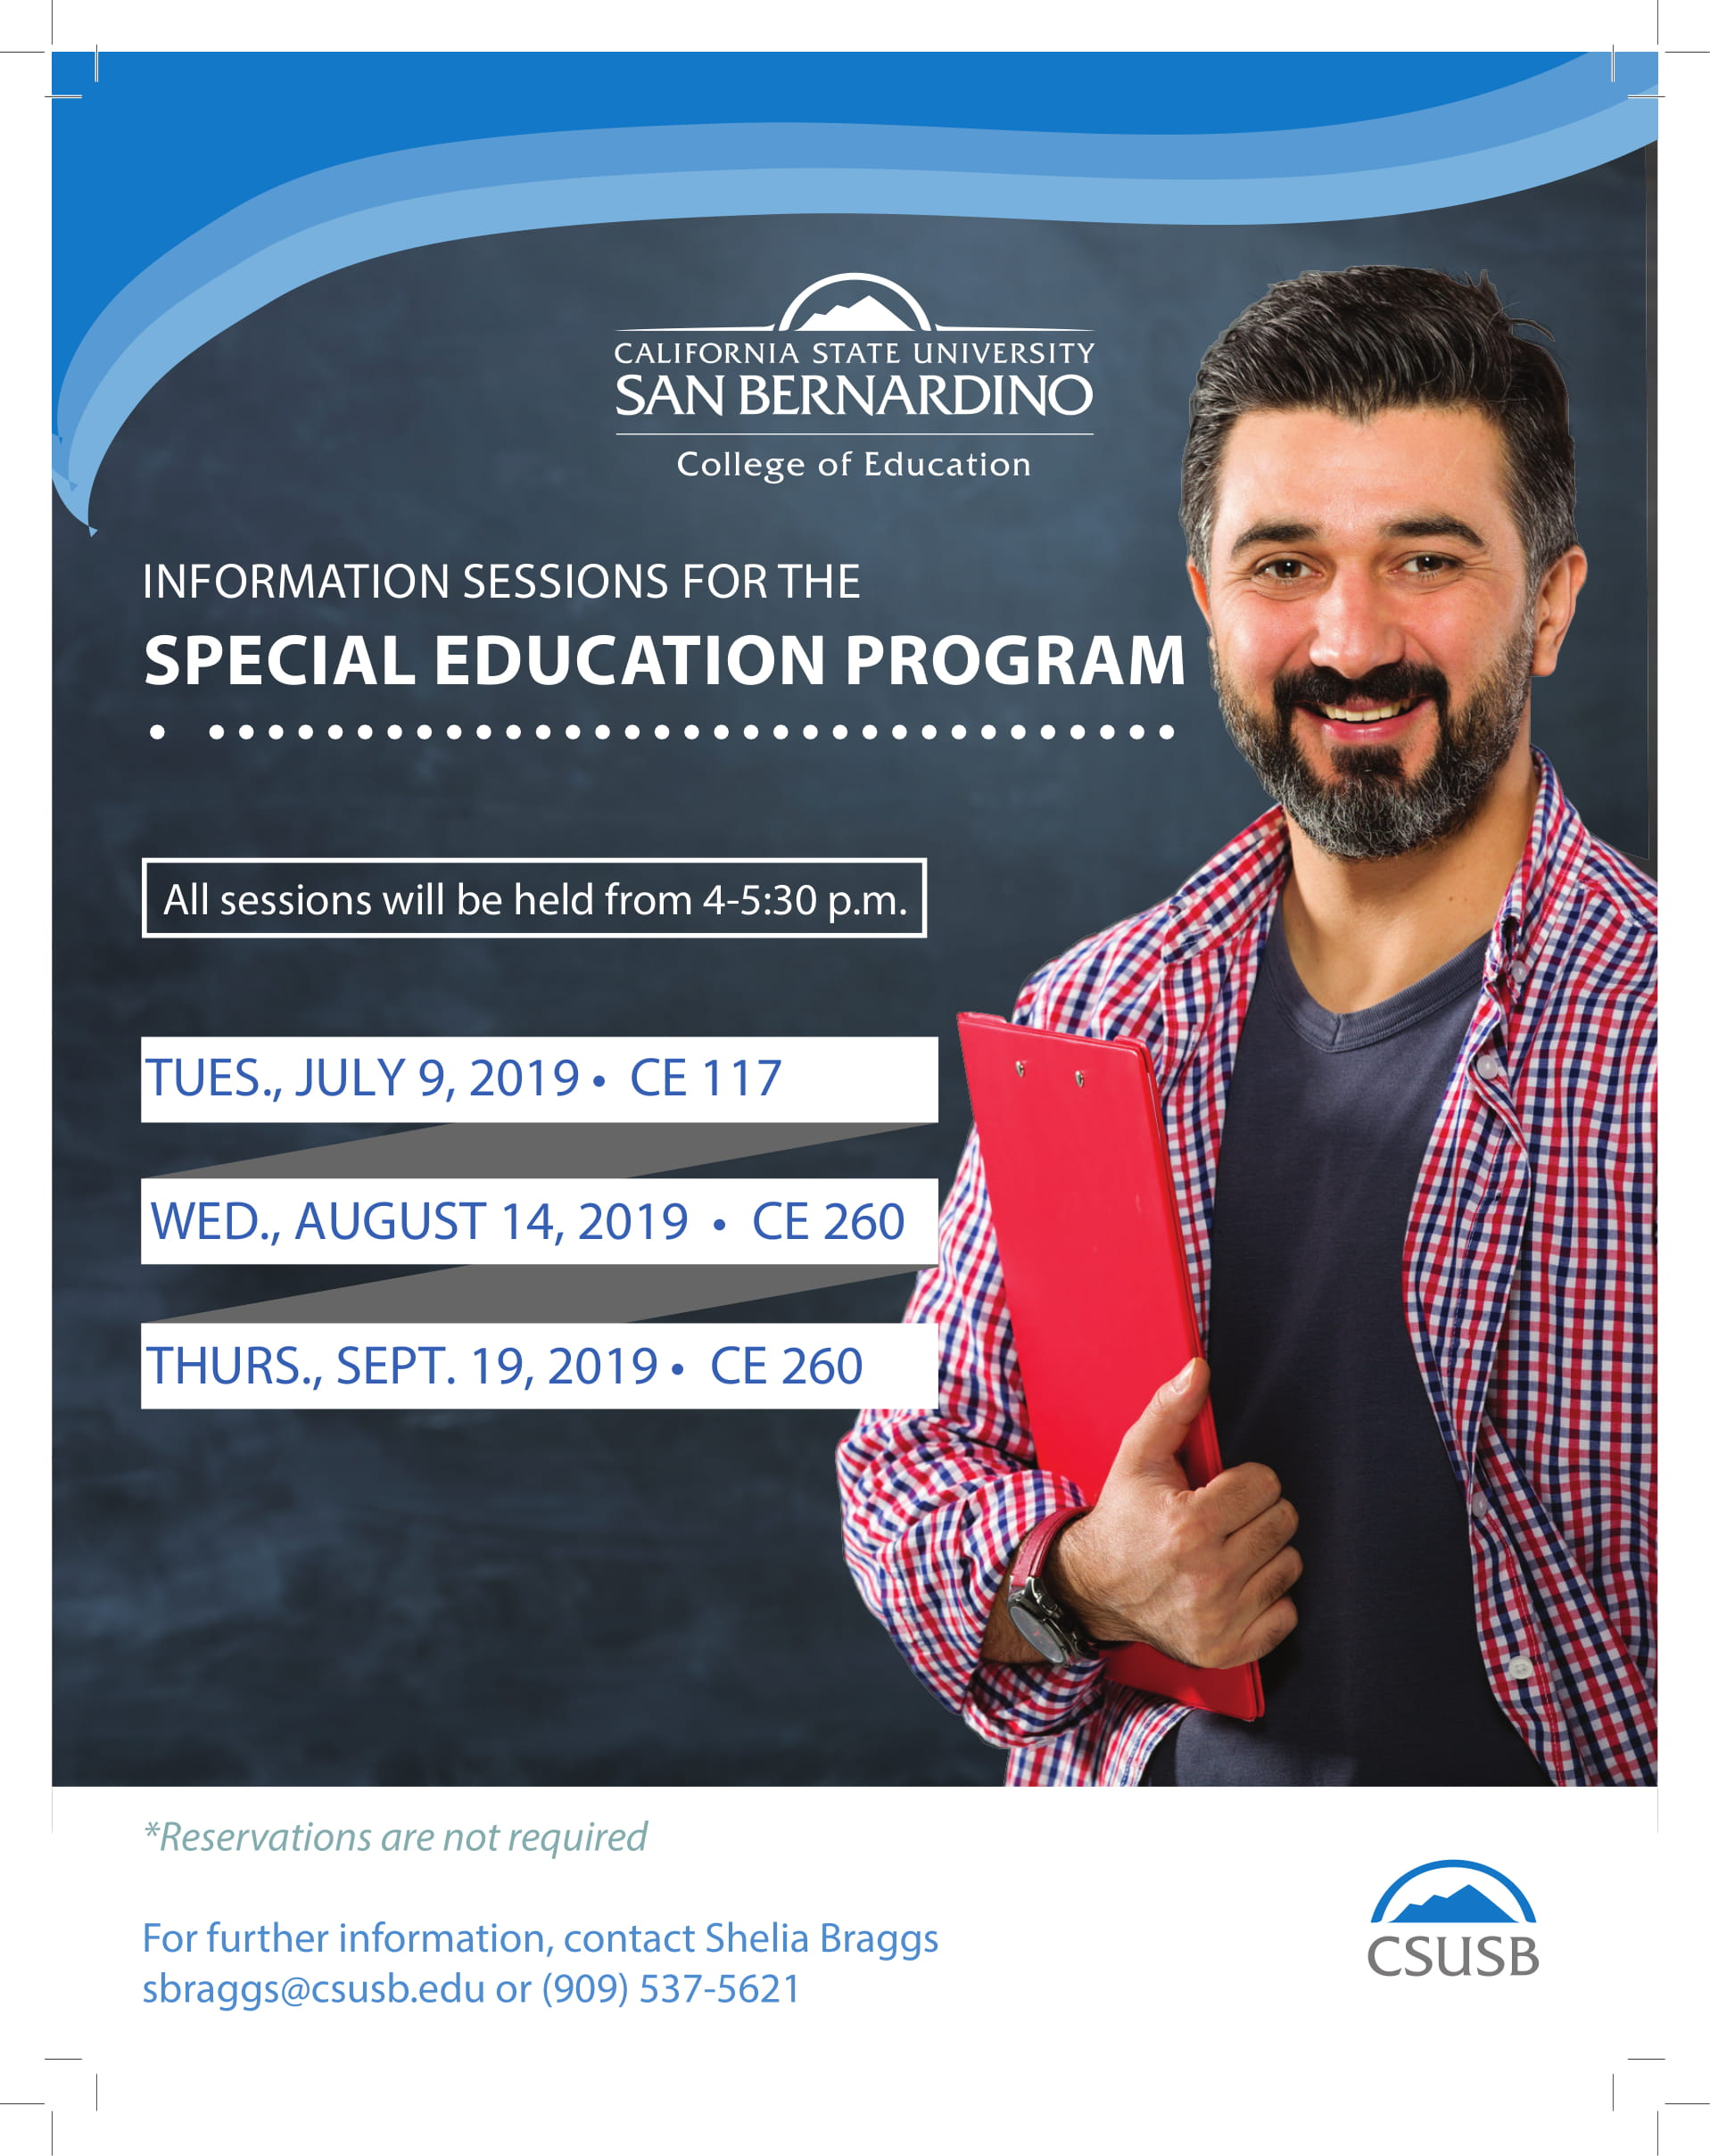 CSUSB - College of Education - Information Sessions for the Special Education Program